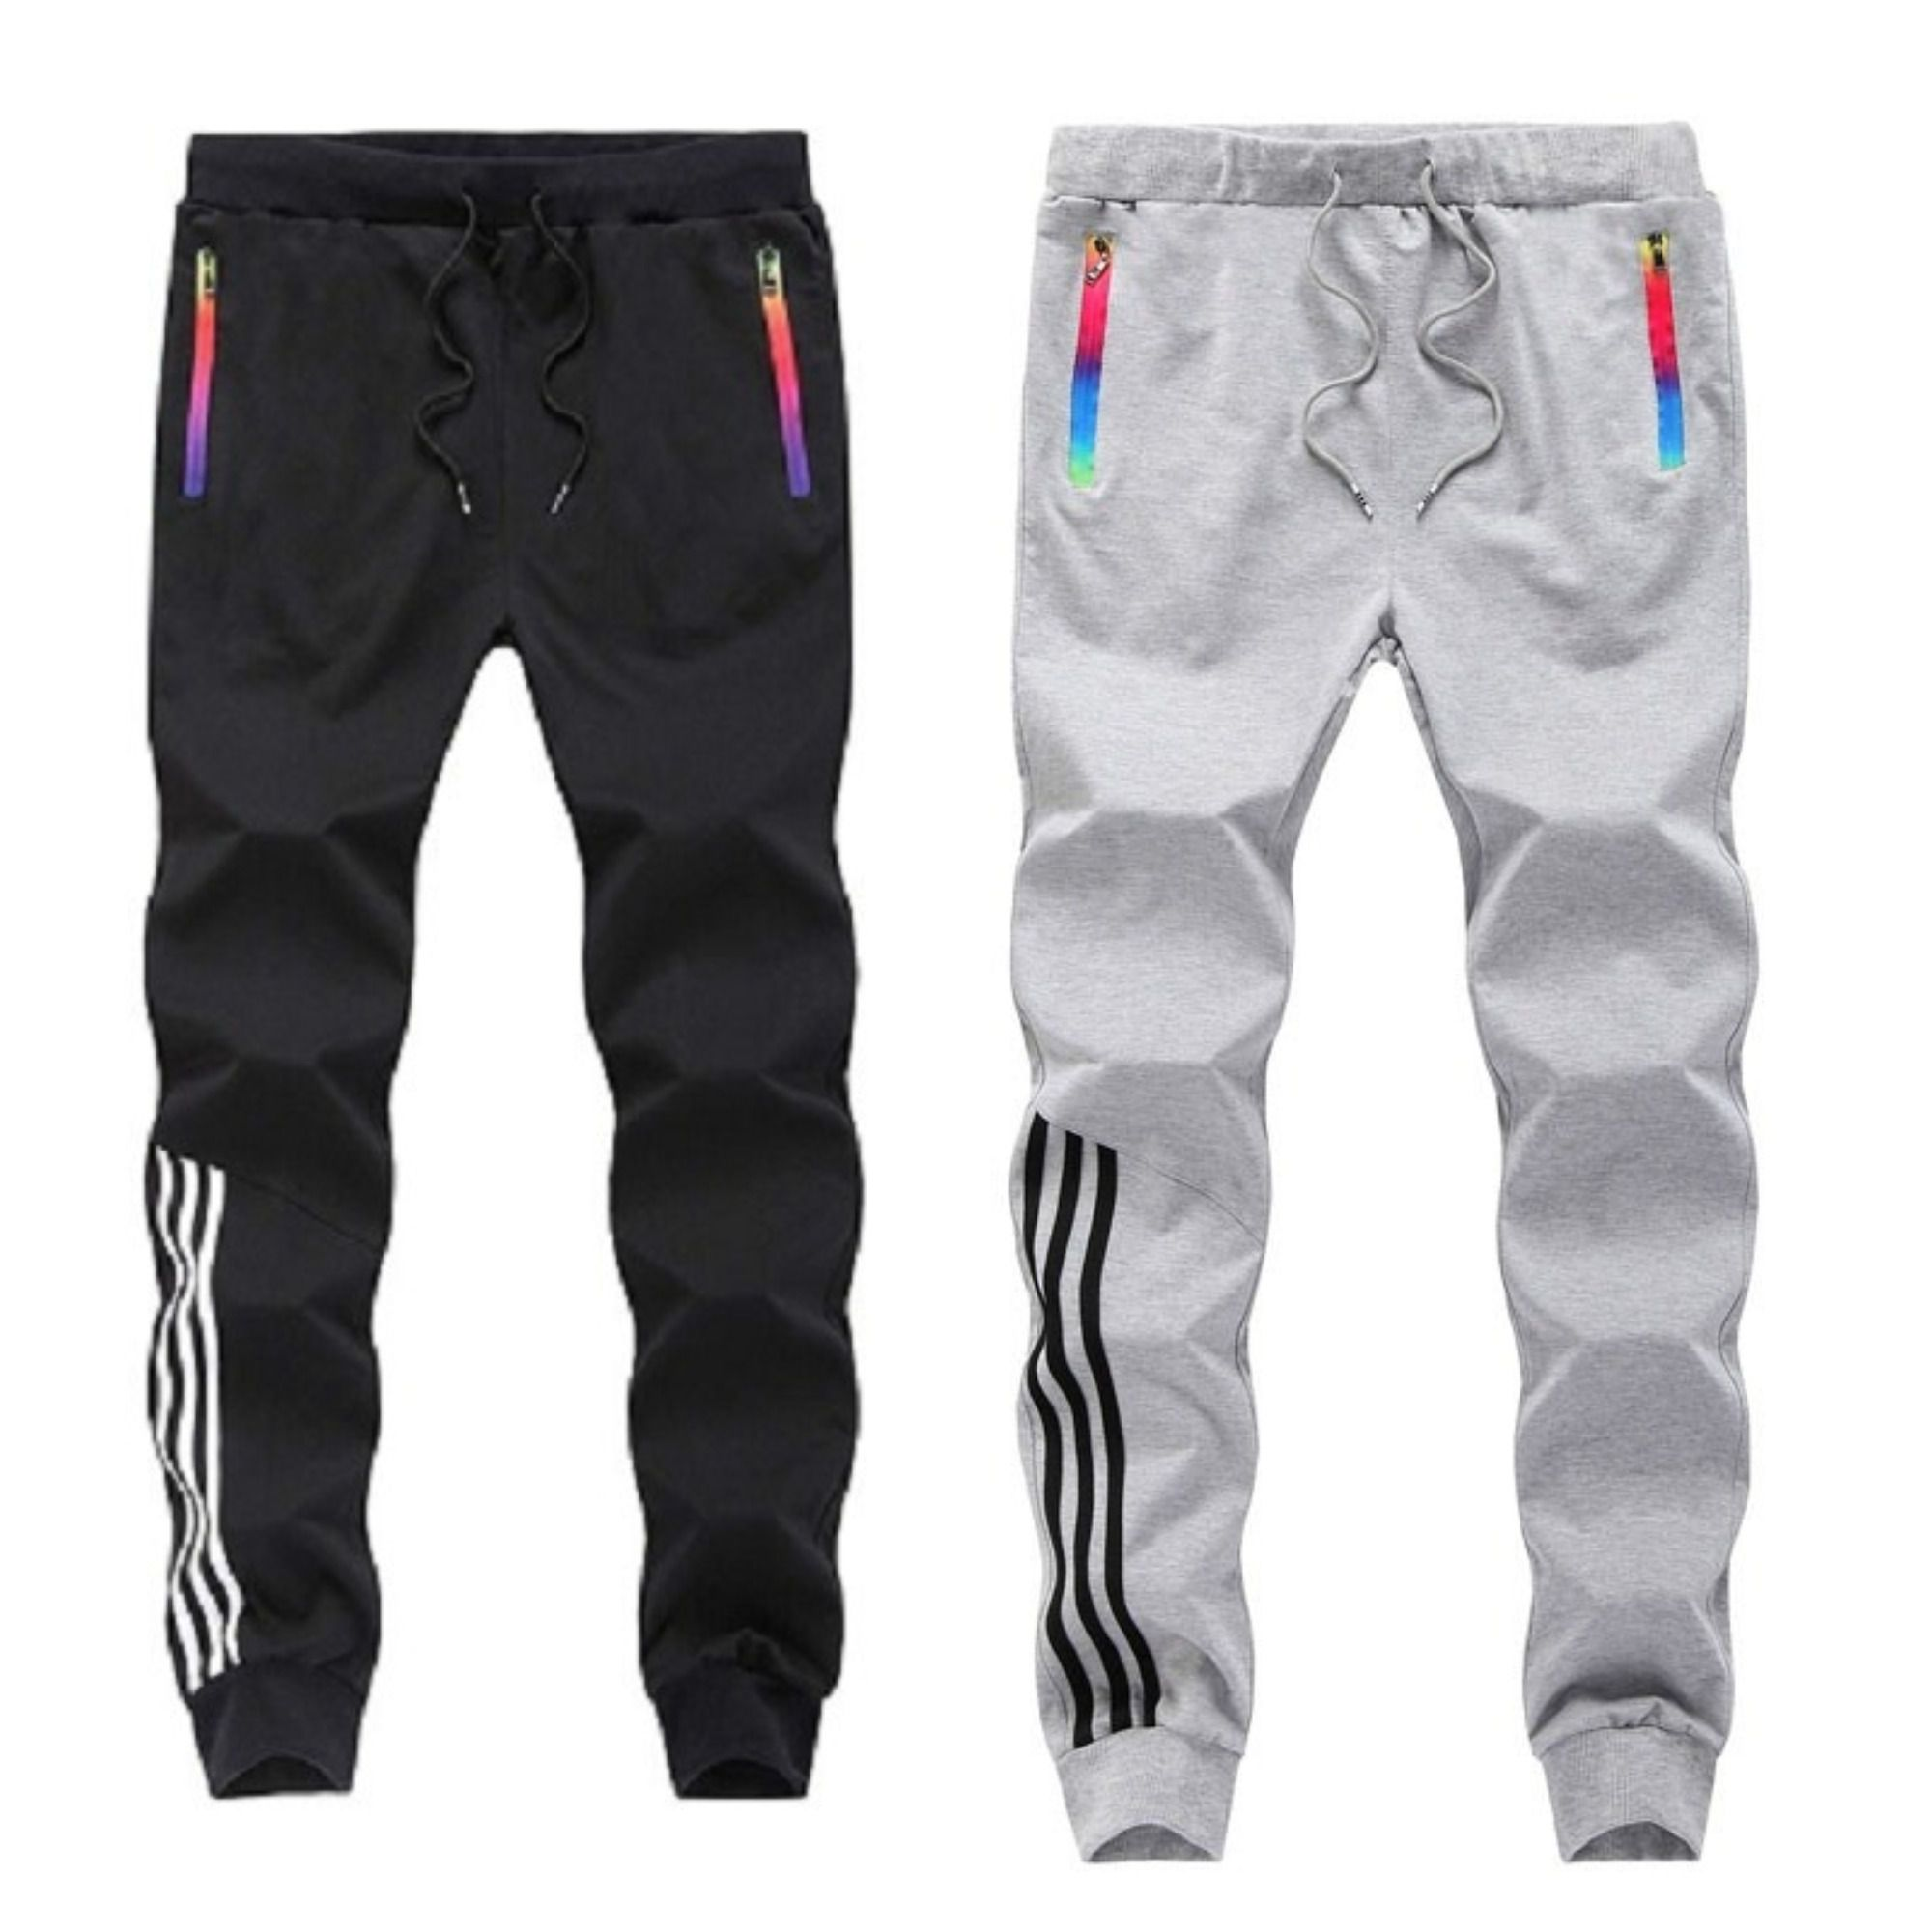 Joggers Park Pack Of 2 Black Grey Skinny Fit Sports Track Pants For Mens With Zipper Pockets